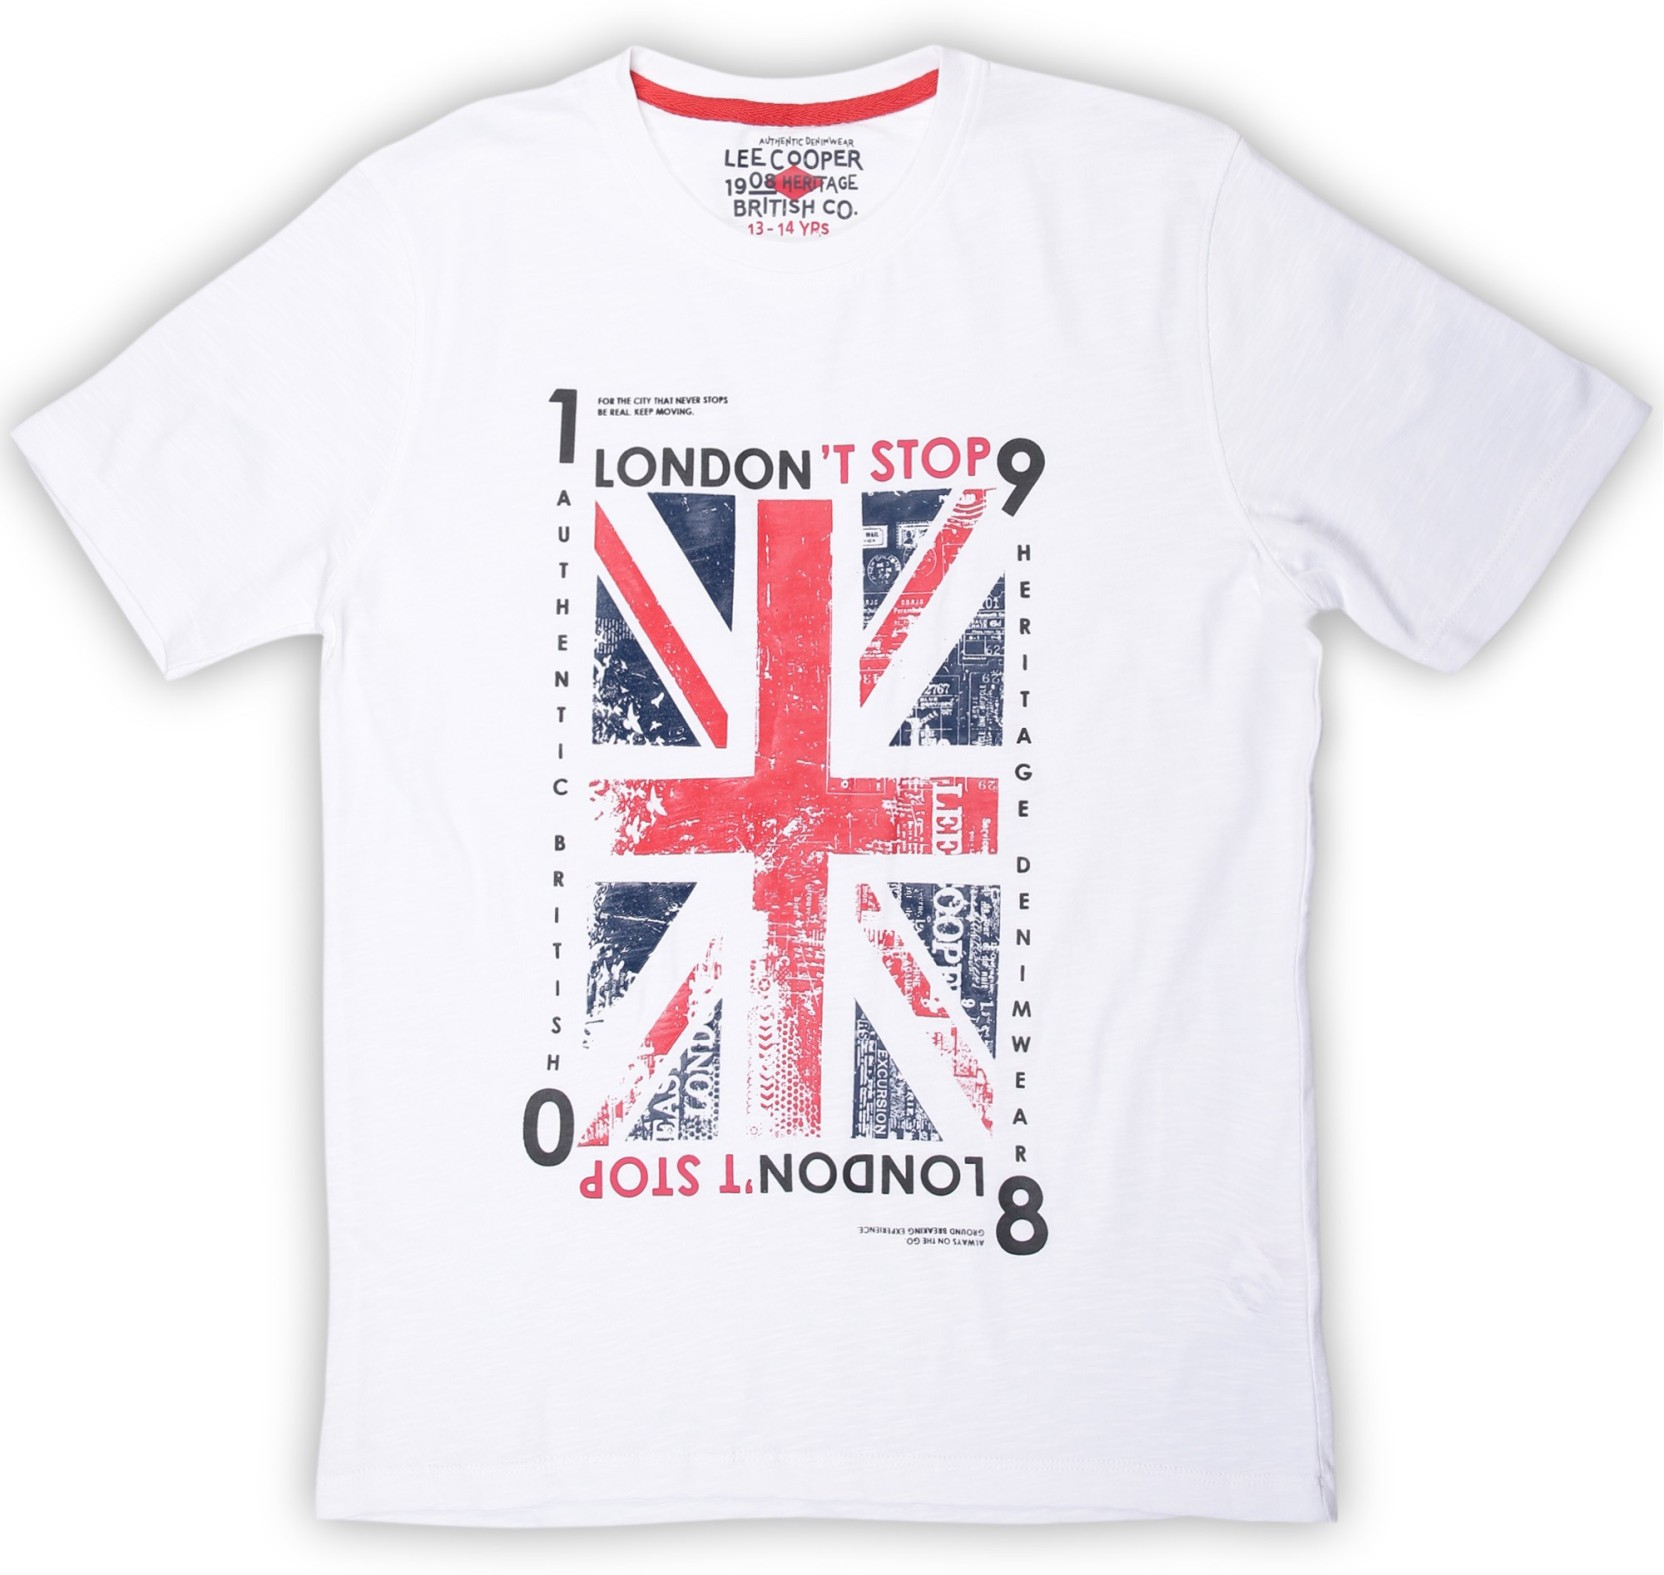 56b796e8c Lee Cooper Boys Printed Cotton T Shirt Price in India - Buy Lee ...